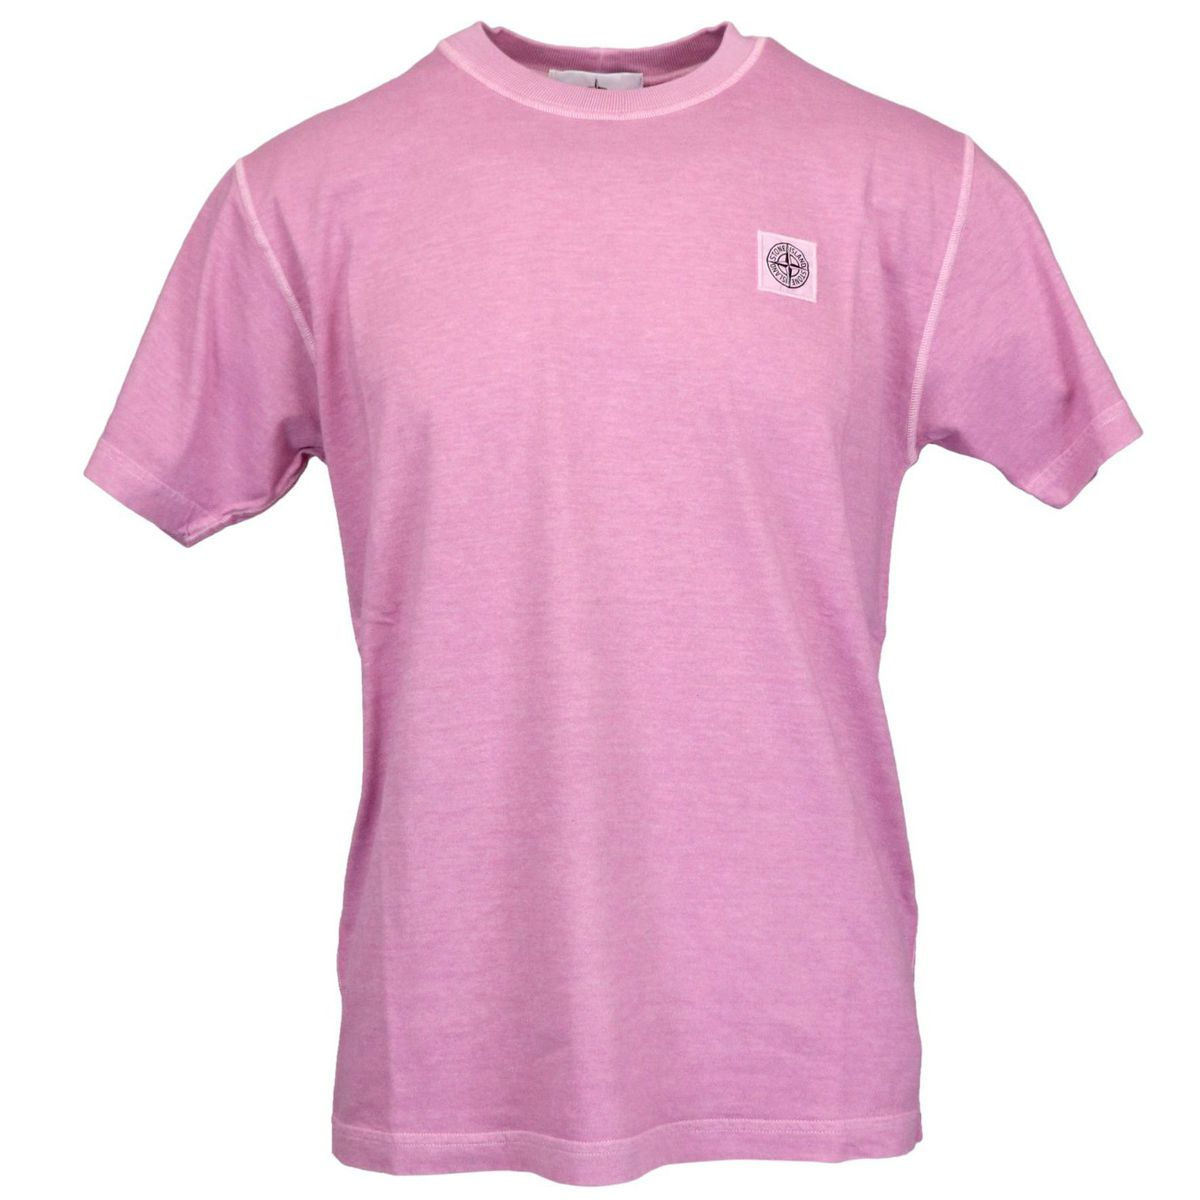 Cotton t-shirt with logo patch on the chest Rose Stone Island